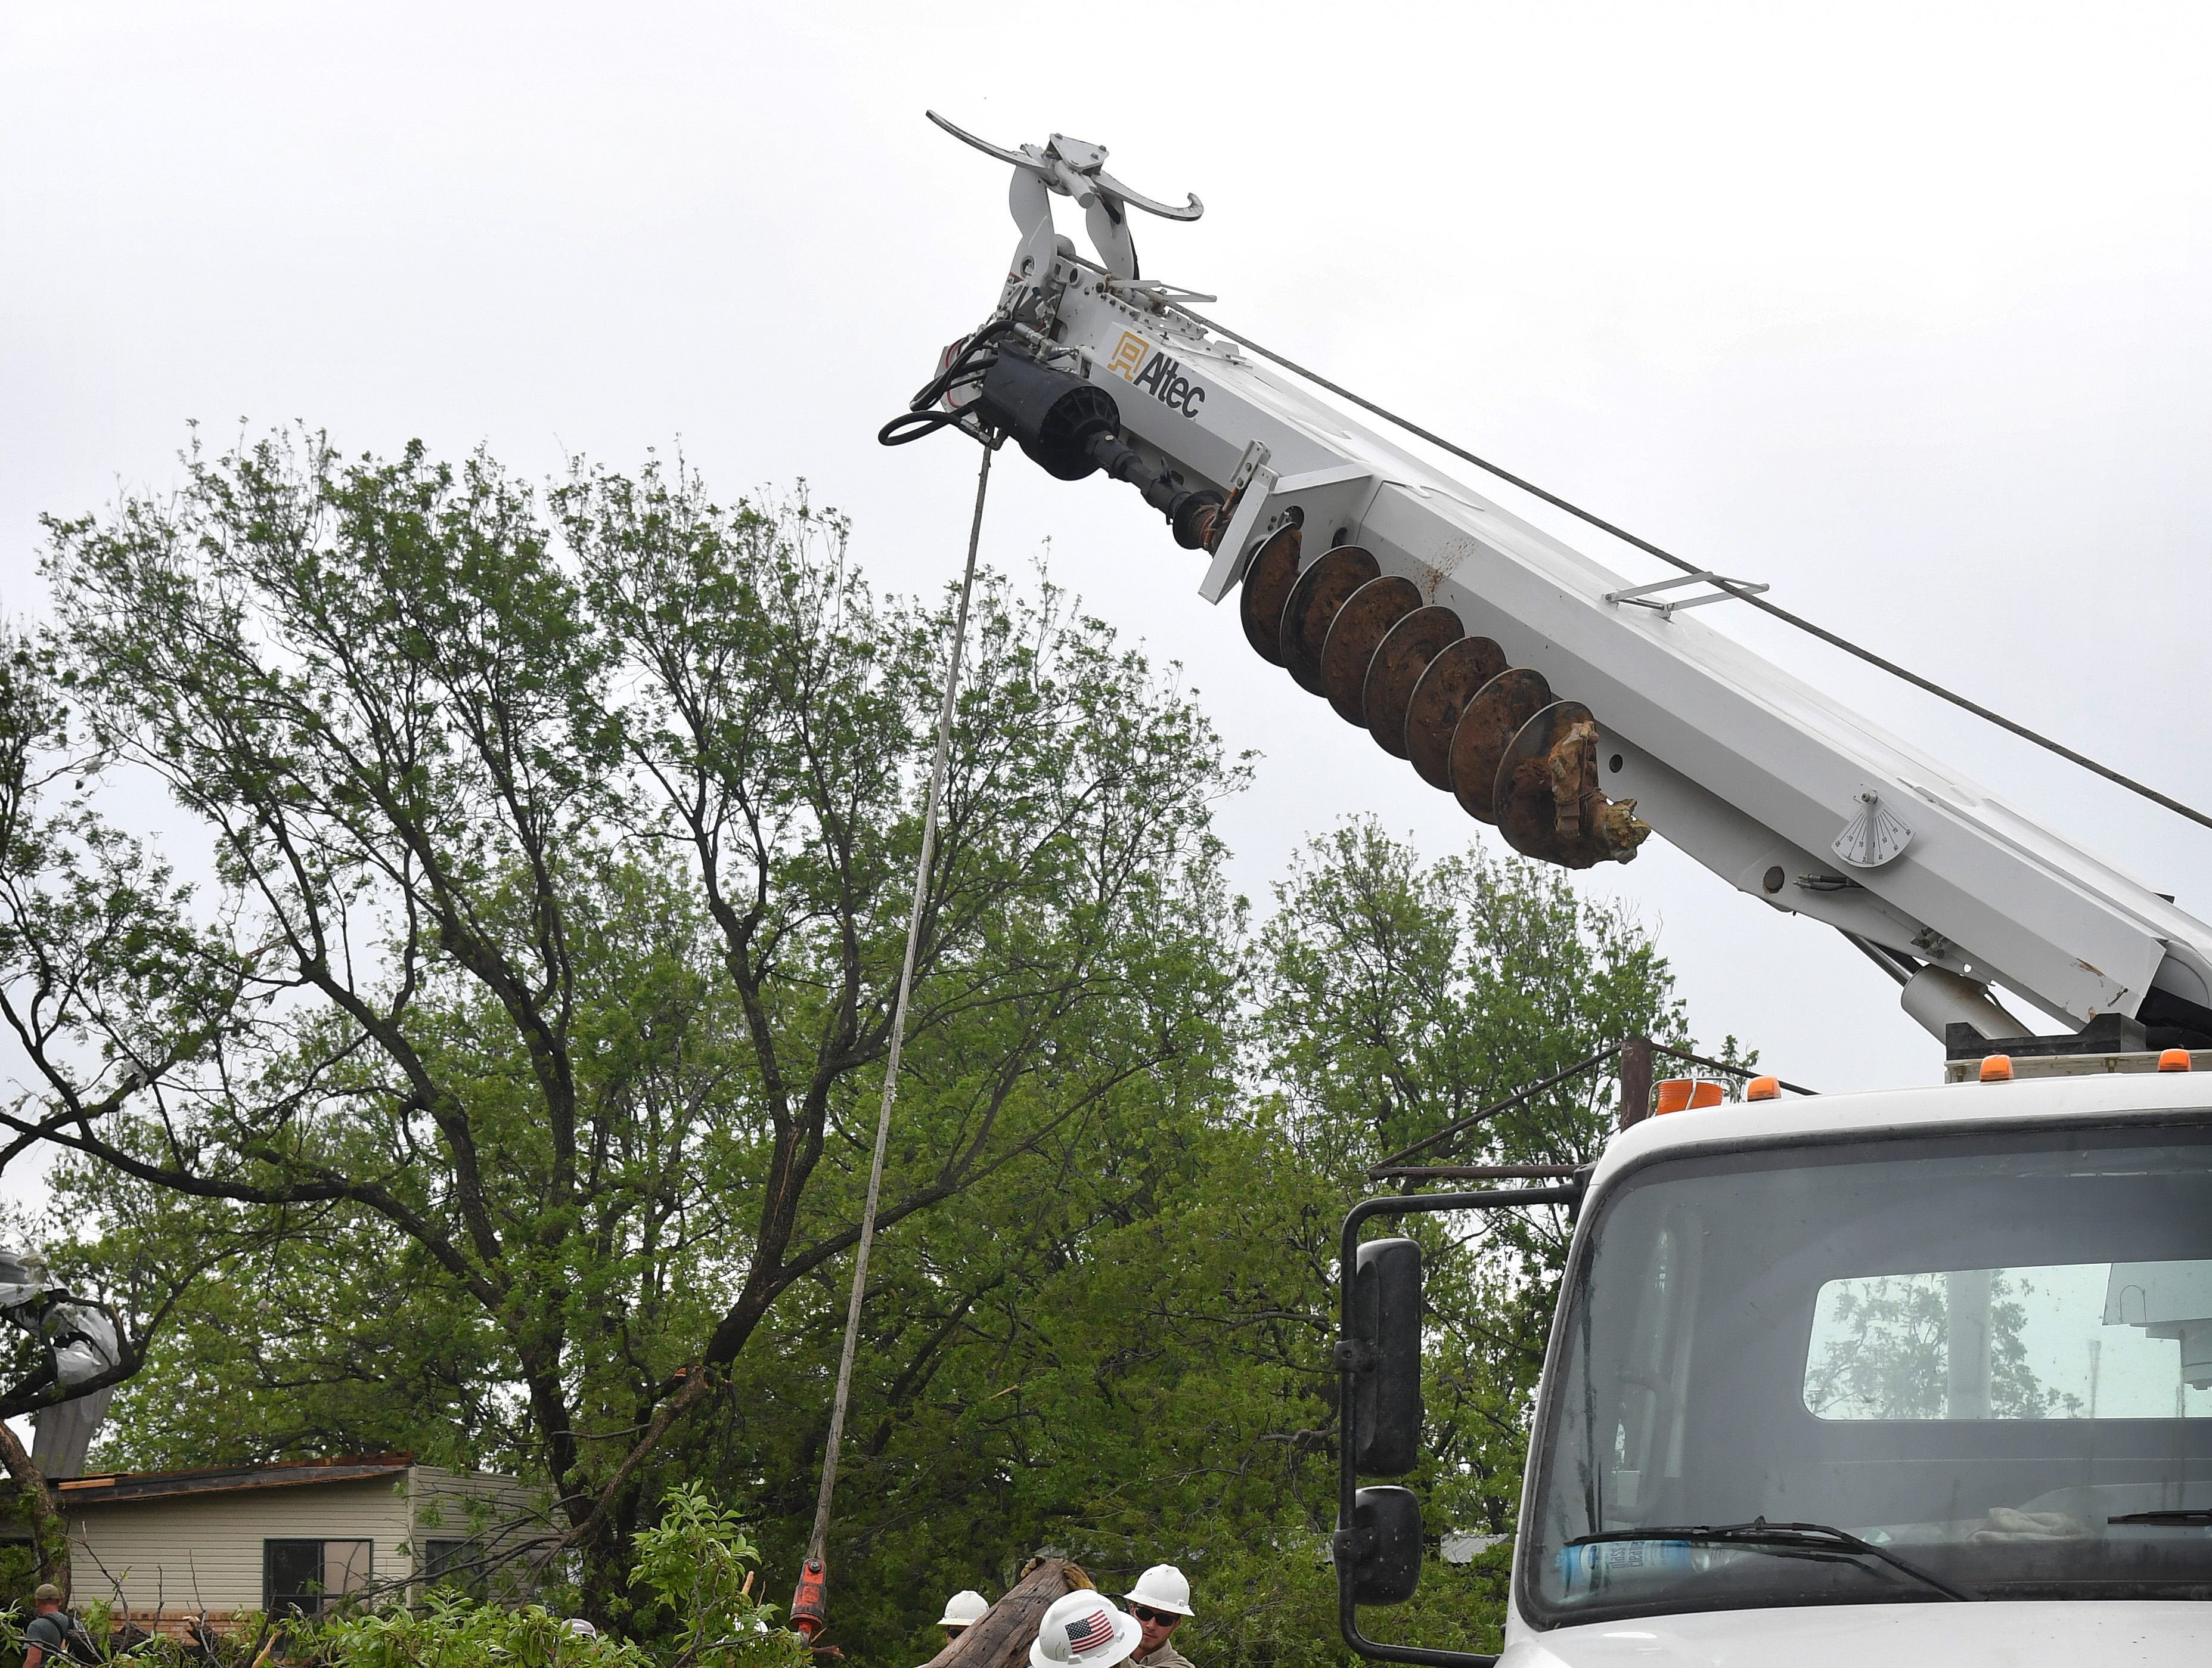 A crew from JAC Electric removes a downed power pole in Charlie where a tornado caused heavy damage at Jetton Farms.